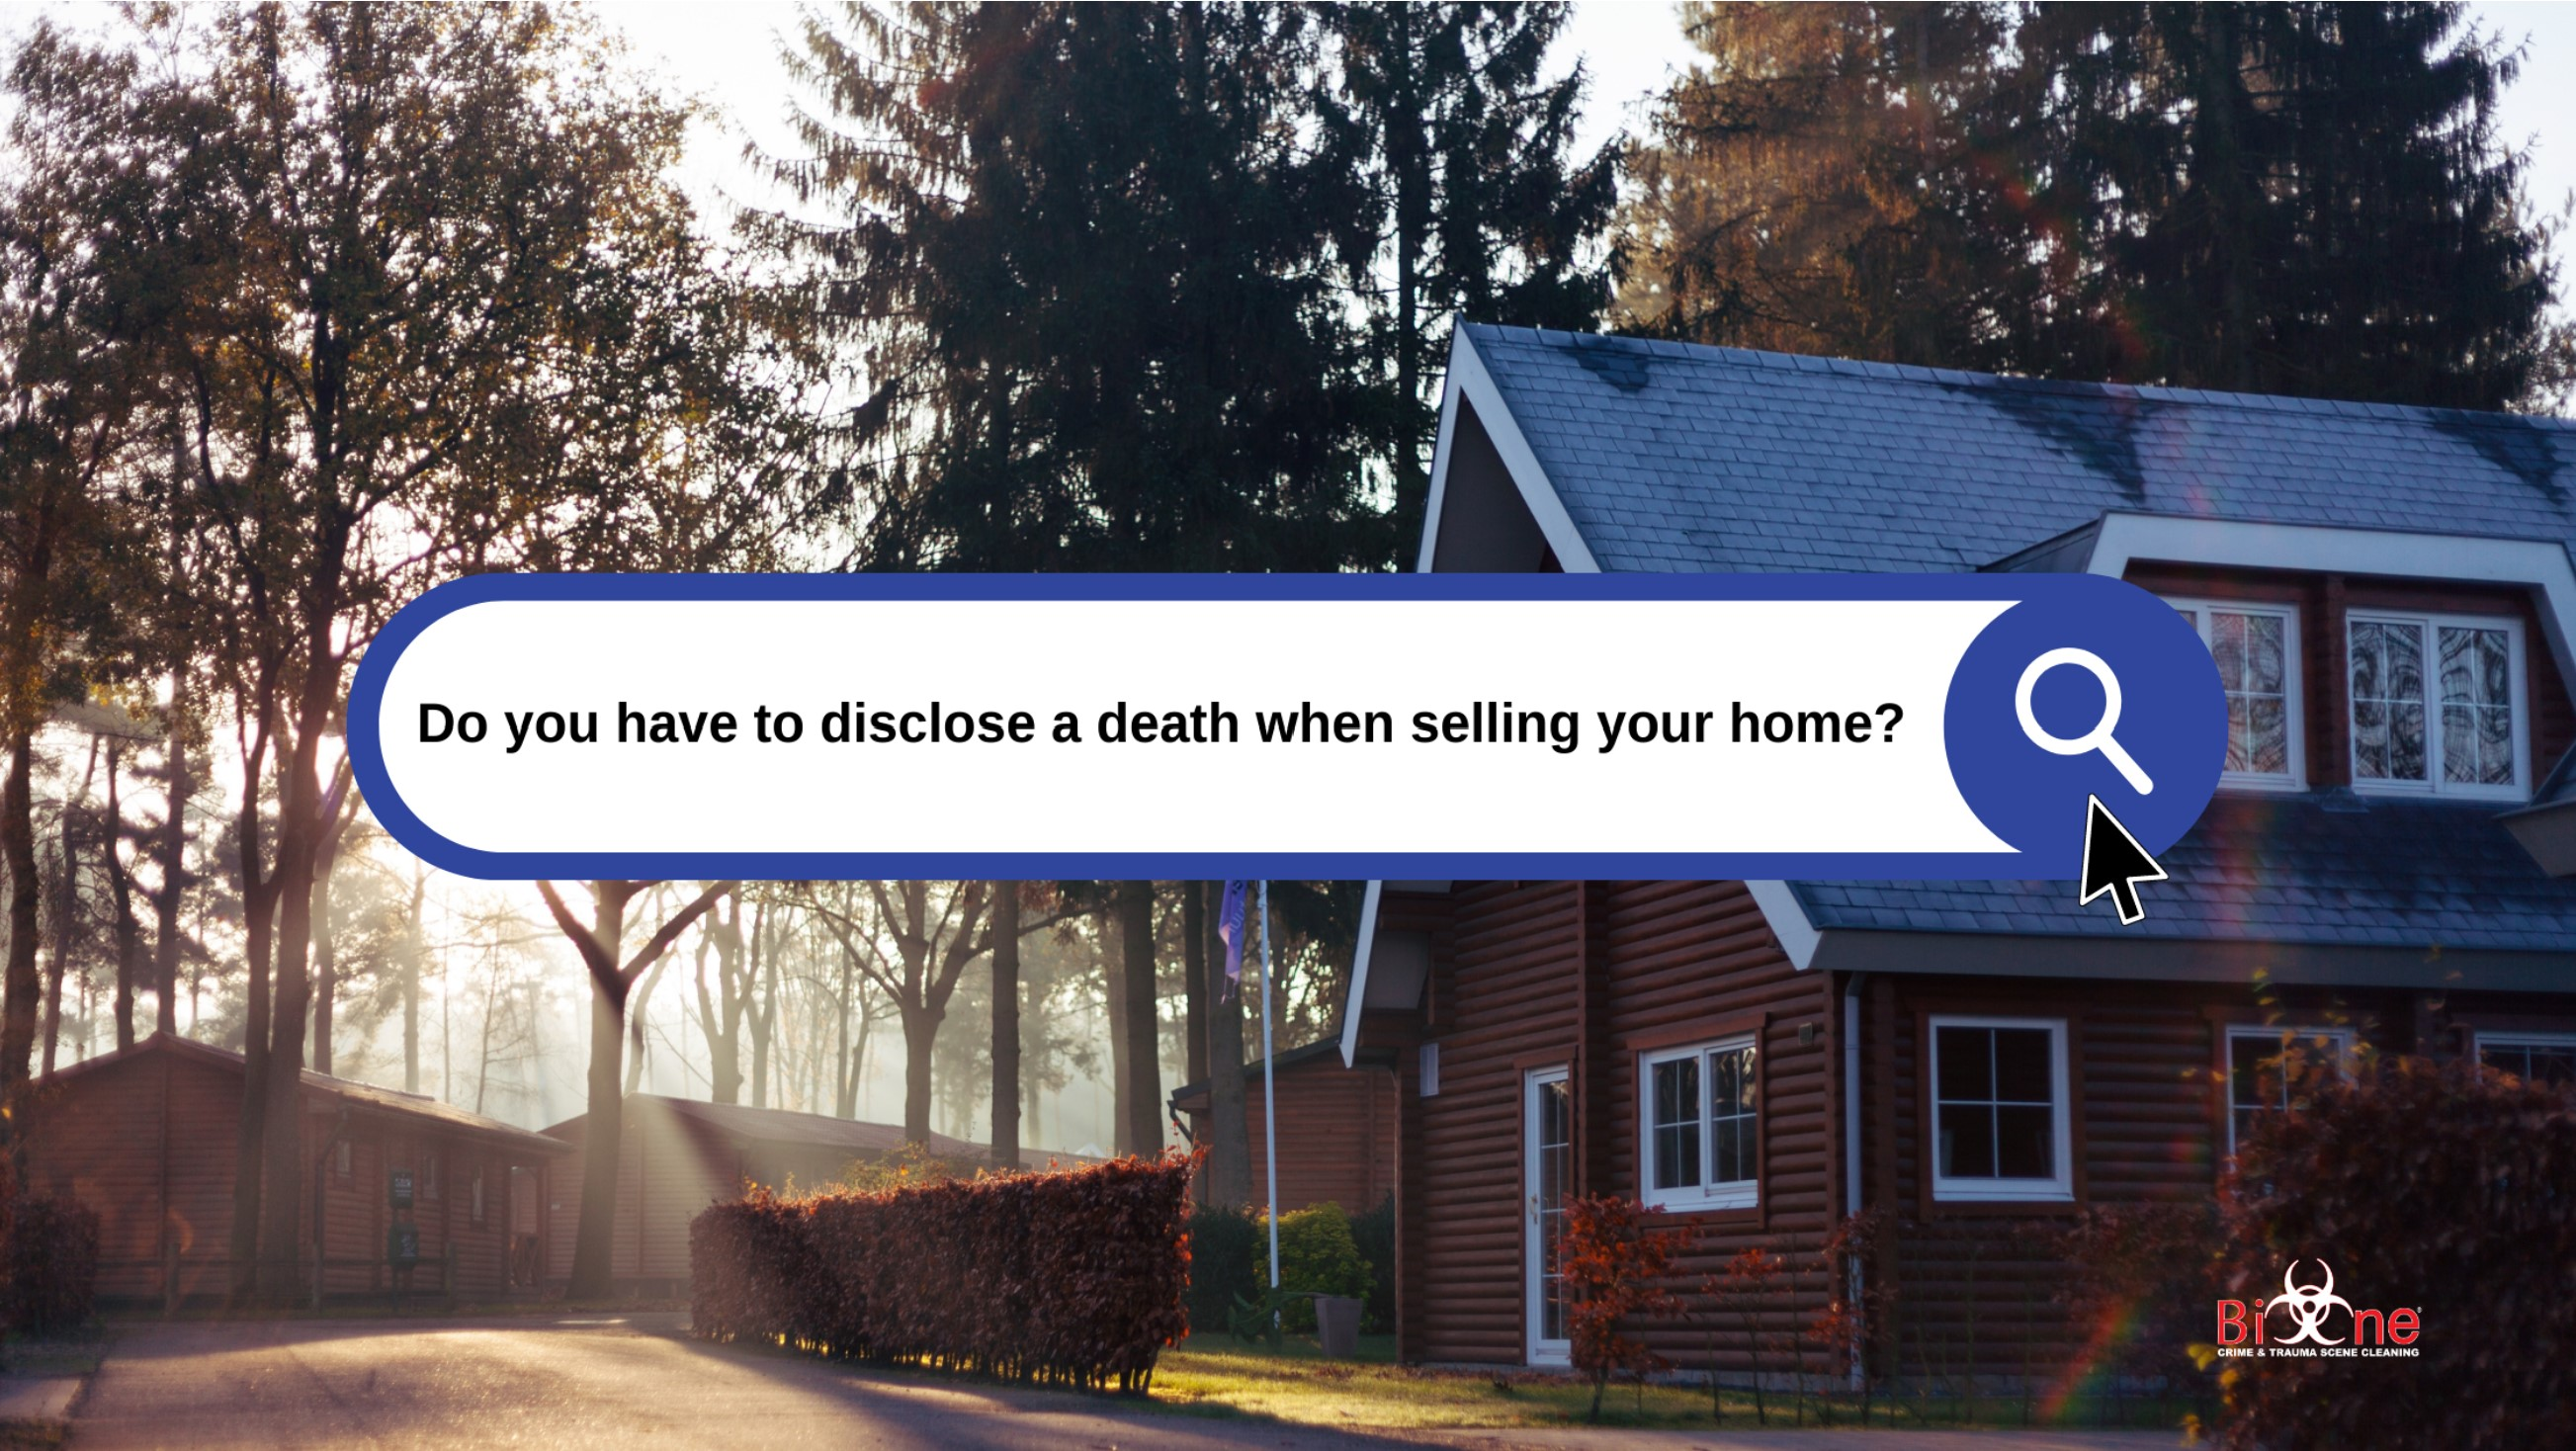 In Nevada Do you Have to Disclose a Death When Selling Your Home?